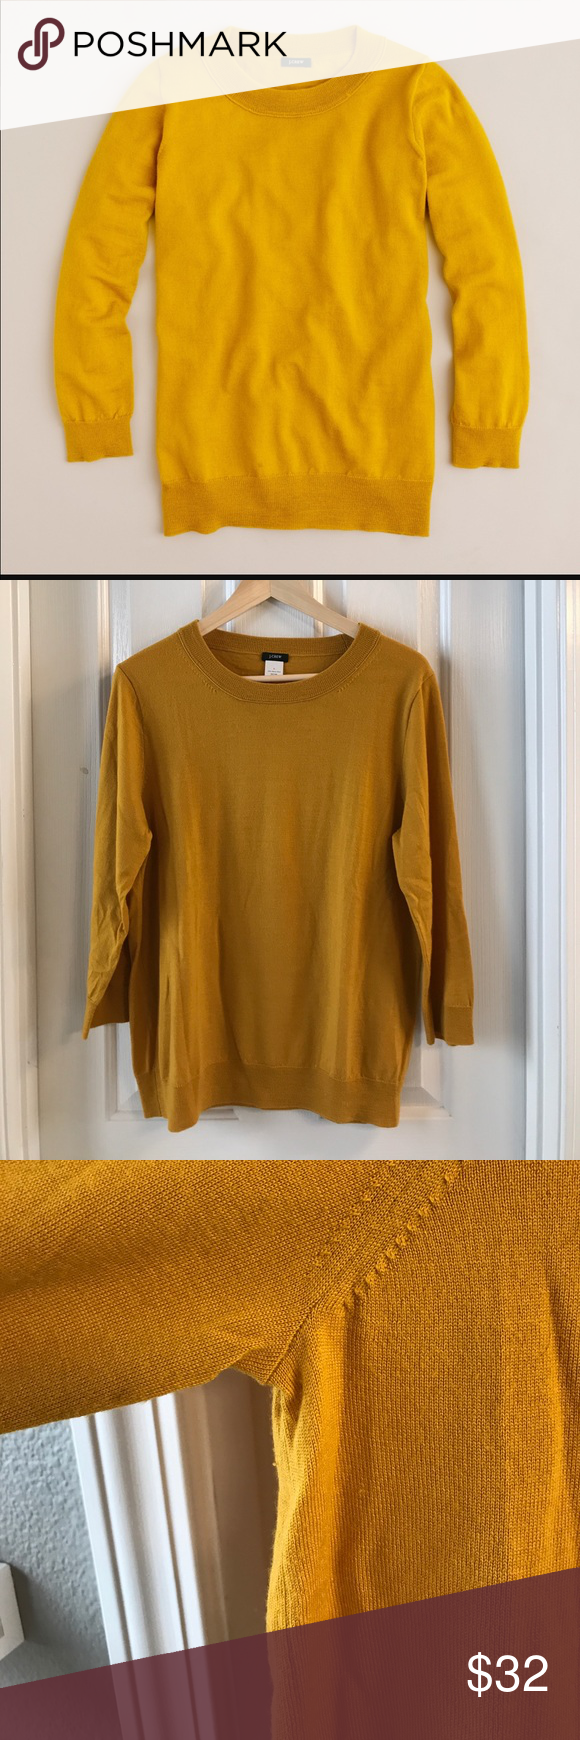 J. Crew Tippi Sweater Yellow/Gold colored 100% merino wool sweater ...